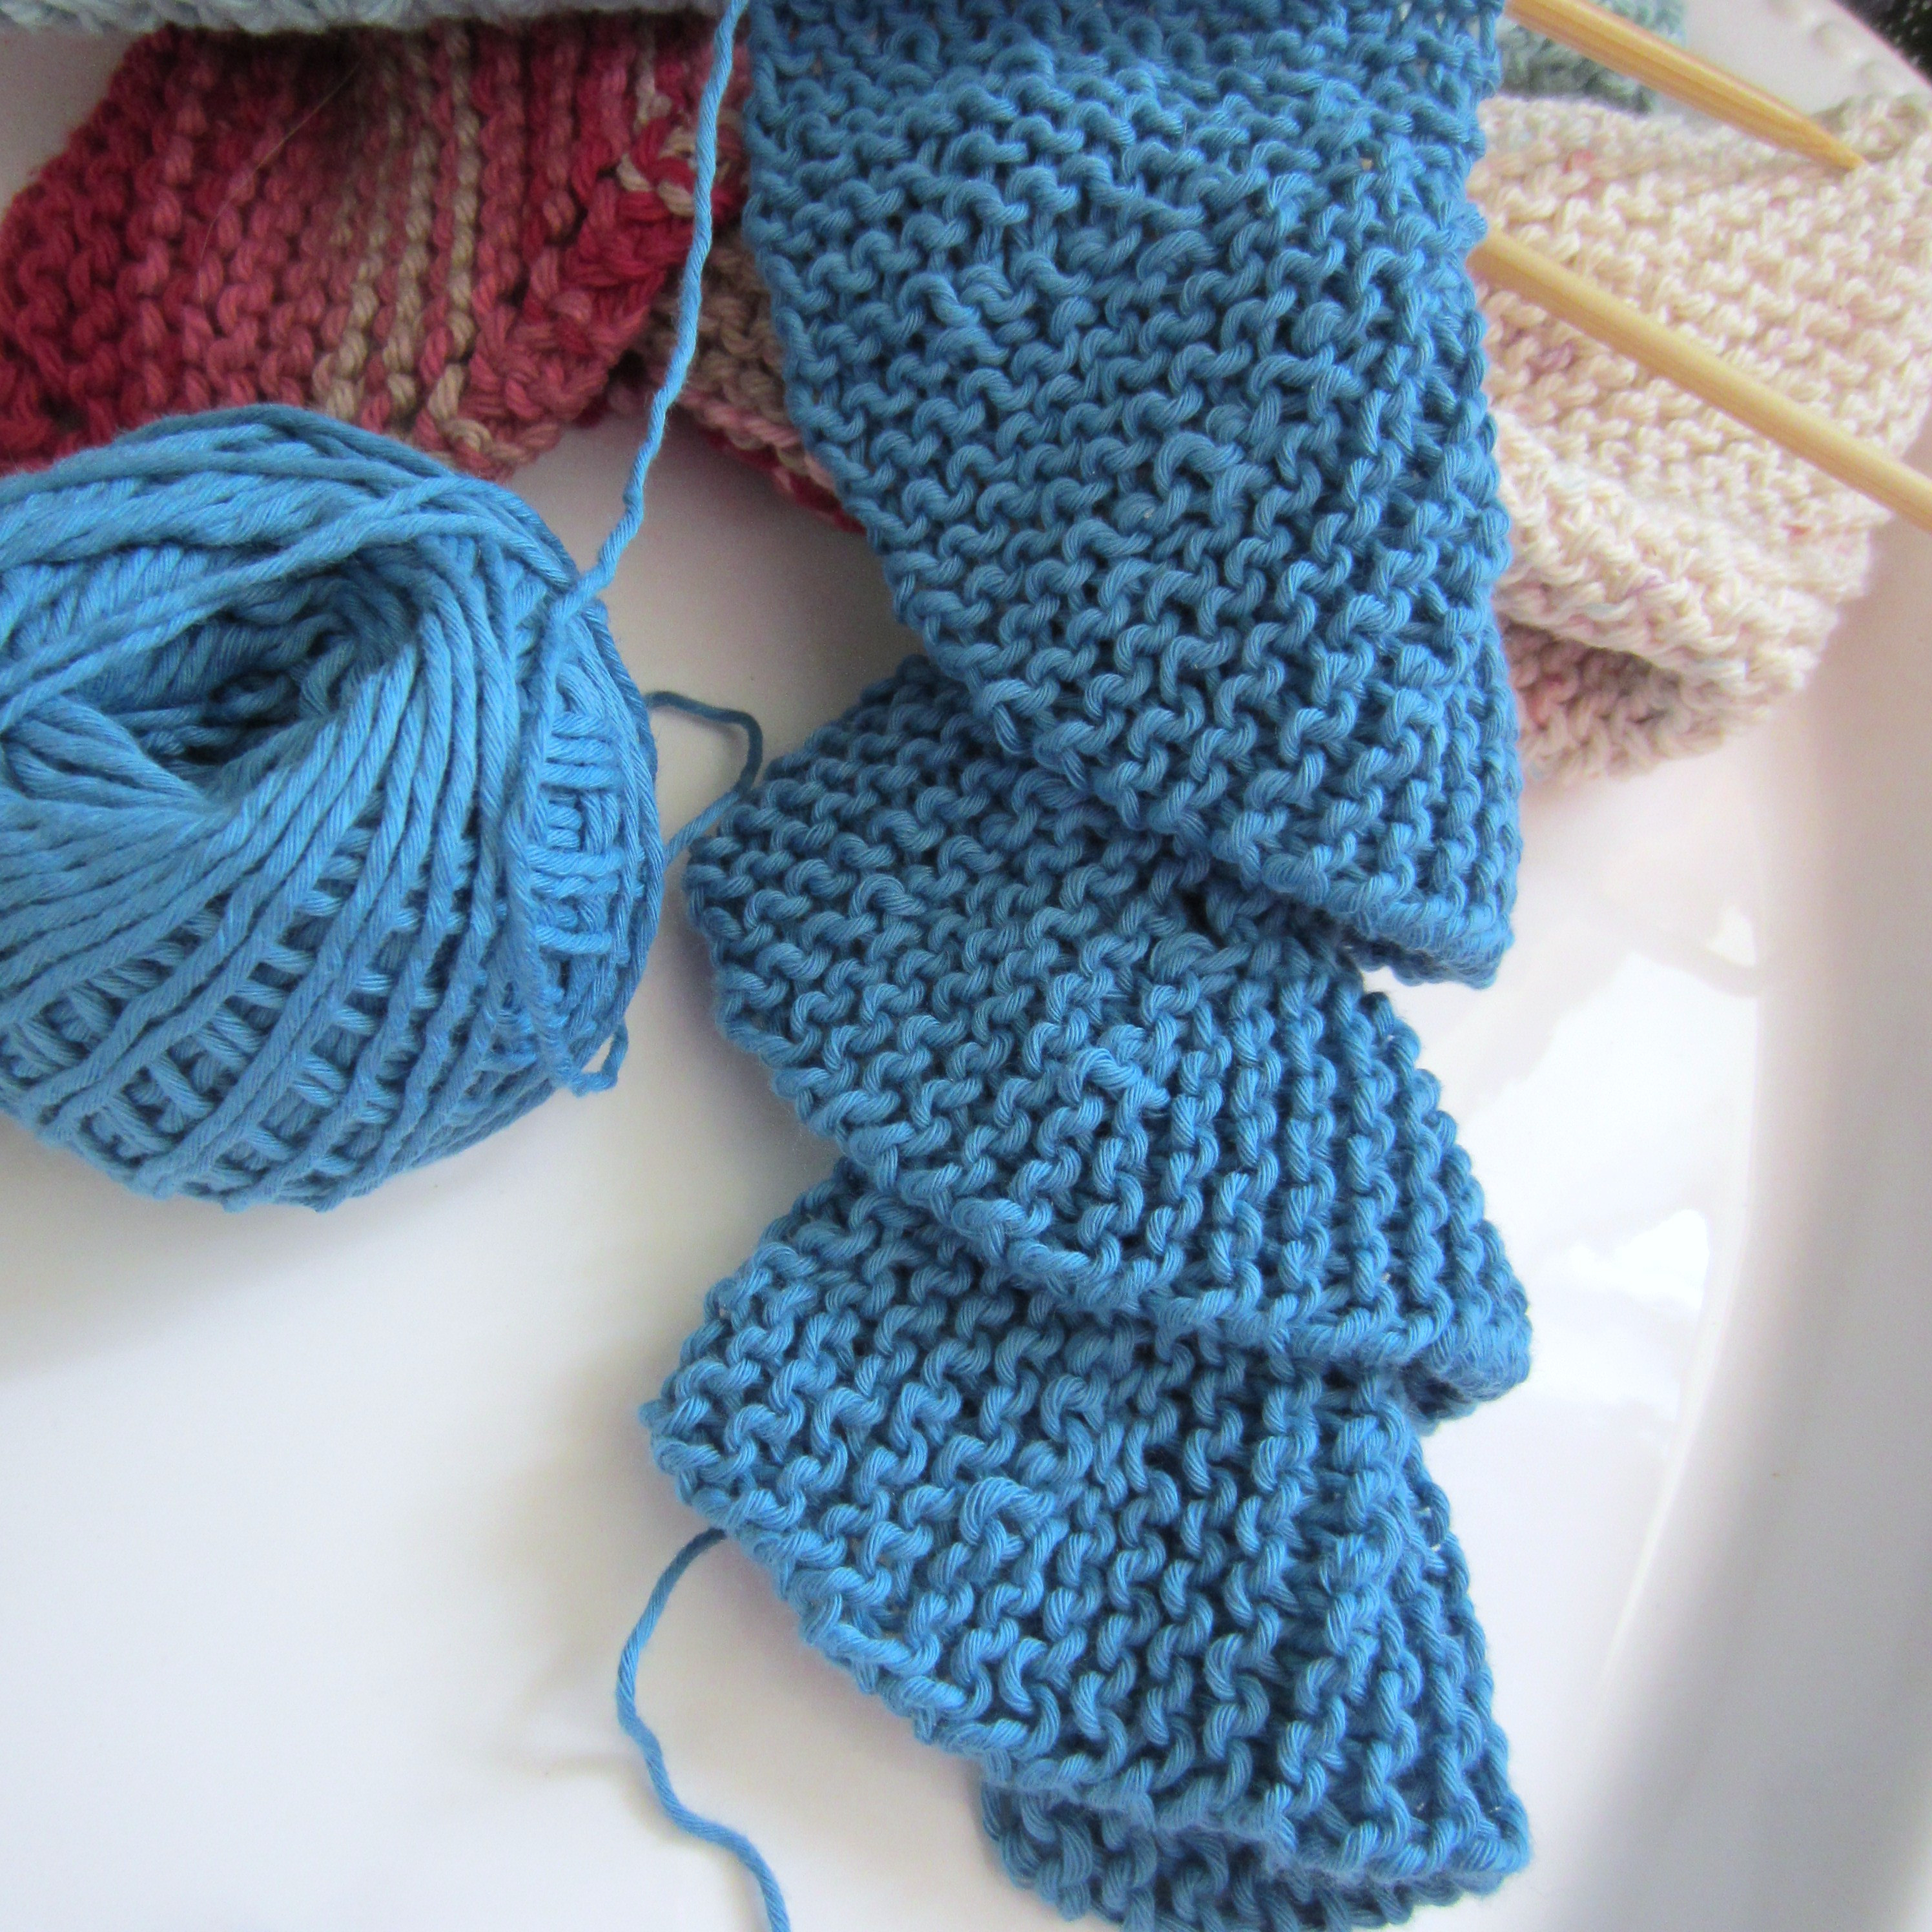 Crochet or Knit New Trying My Hand at Short Row Knitting Spiral Scarf Of Superb 42 Pics Crochet or Knit